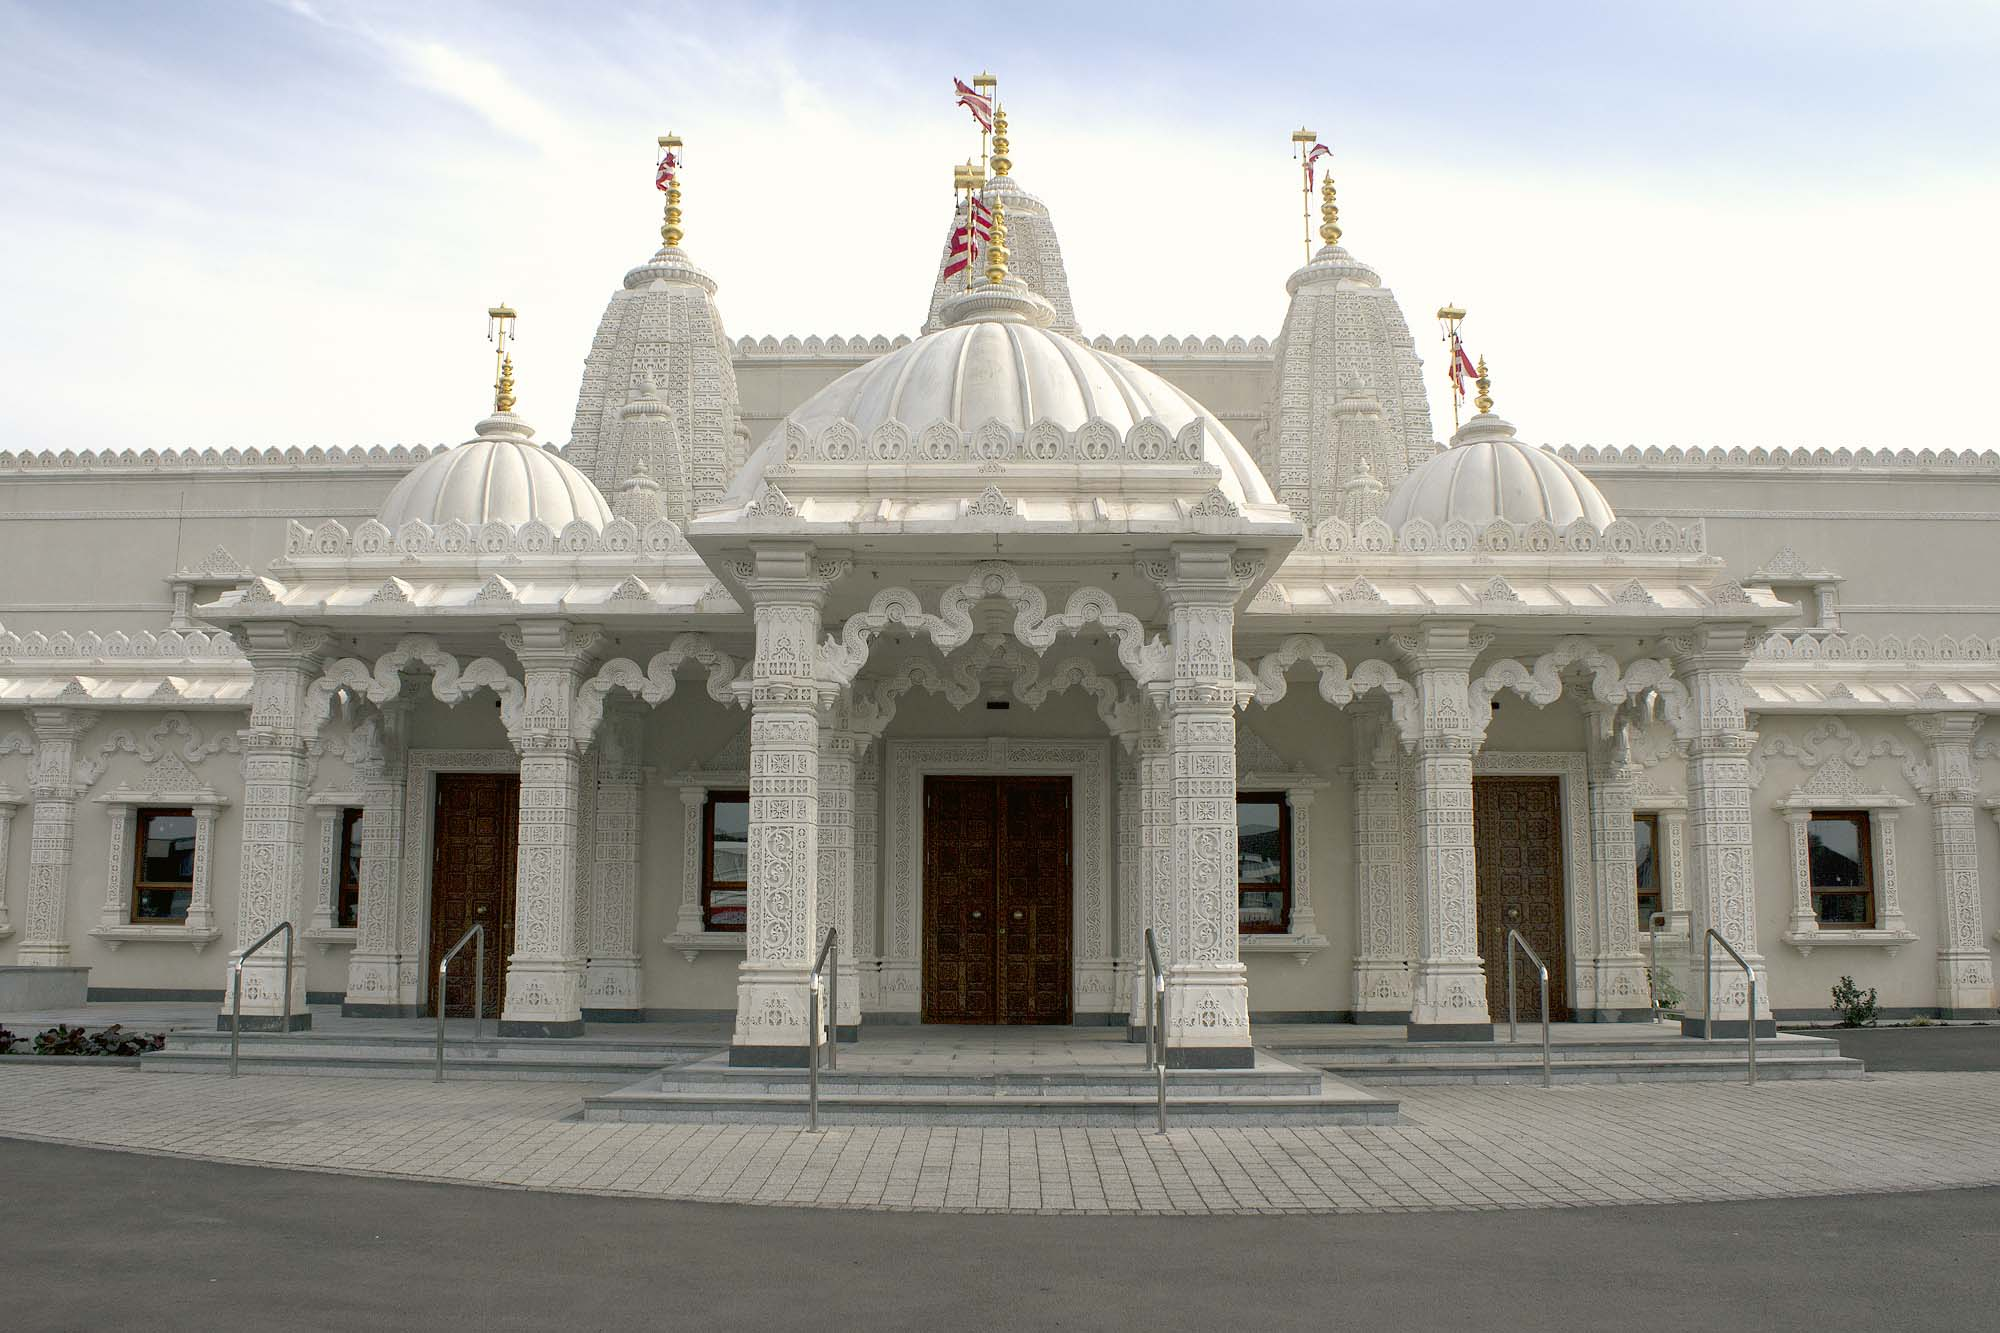 The front entrance has white limestone that was exquisitely carved in India -